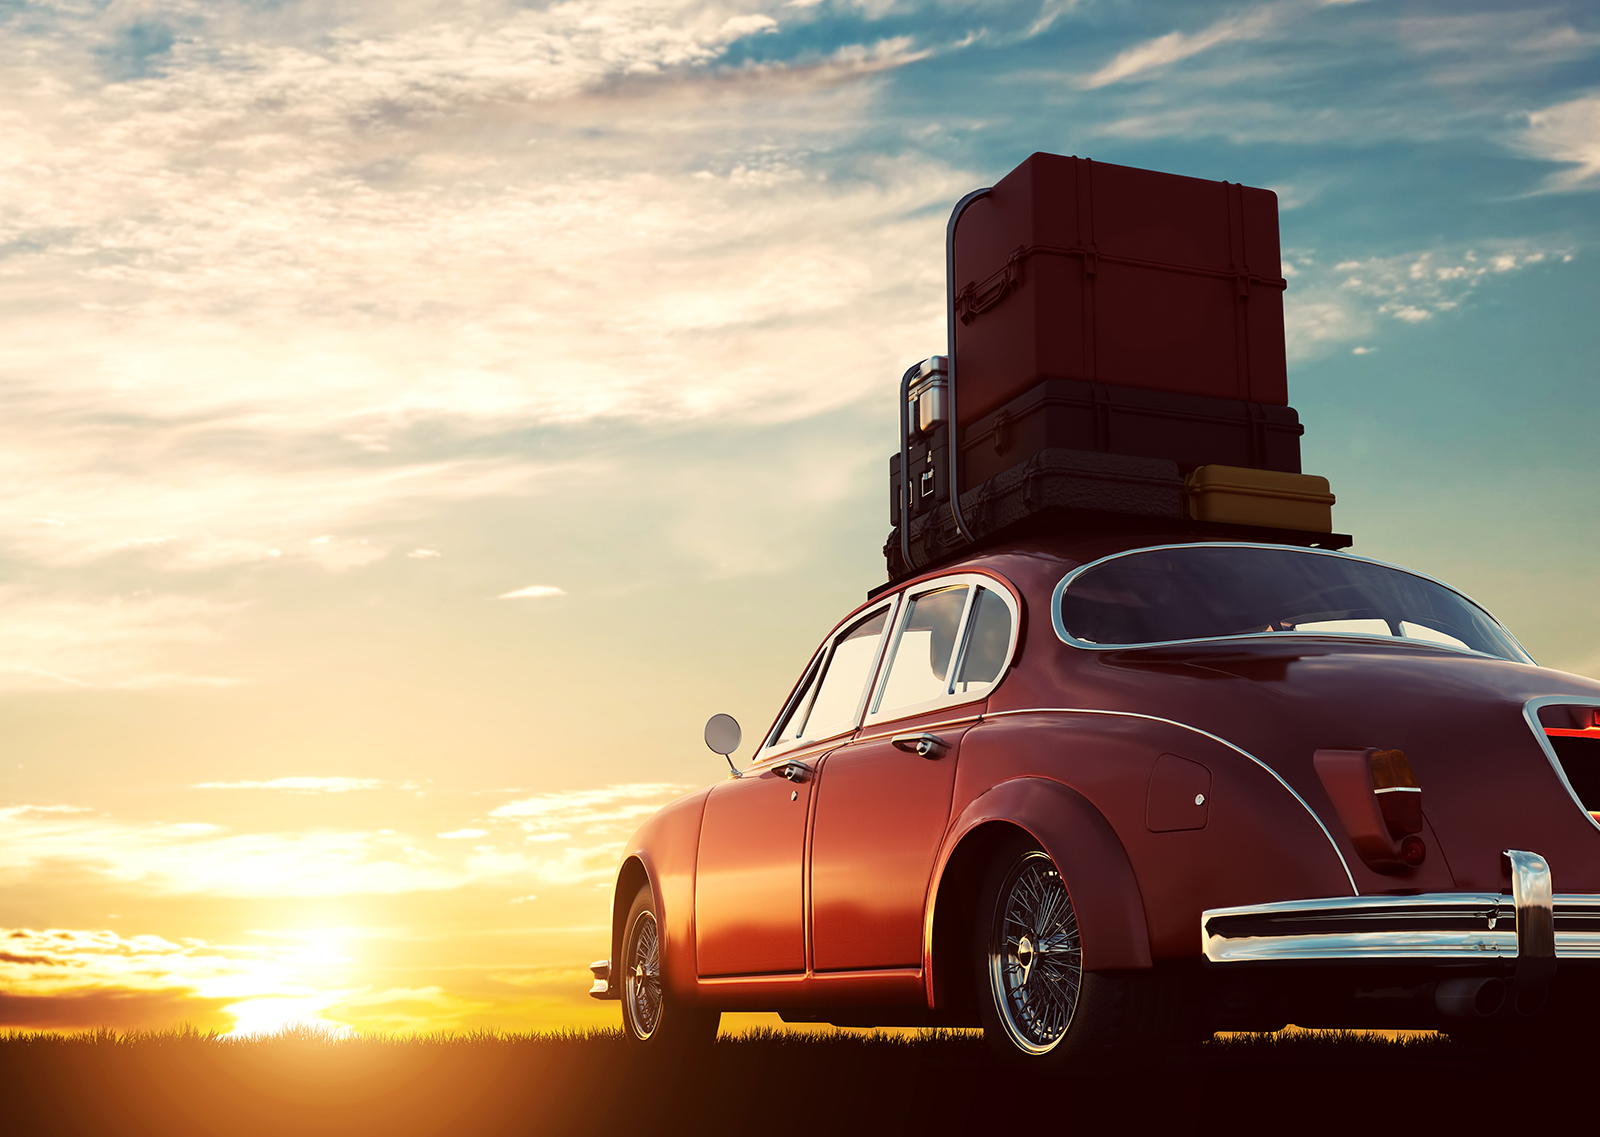 Car with luggage